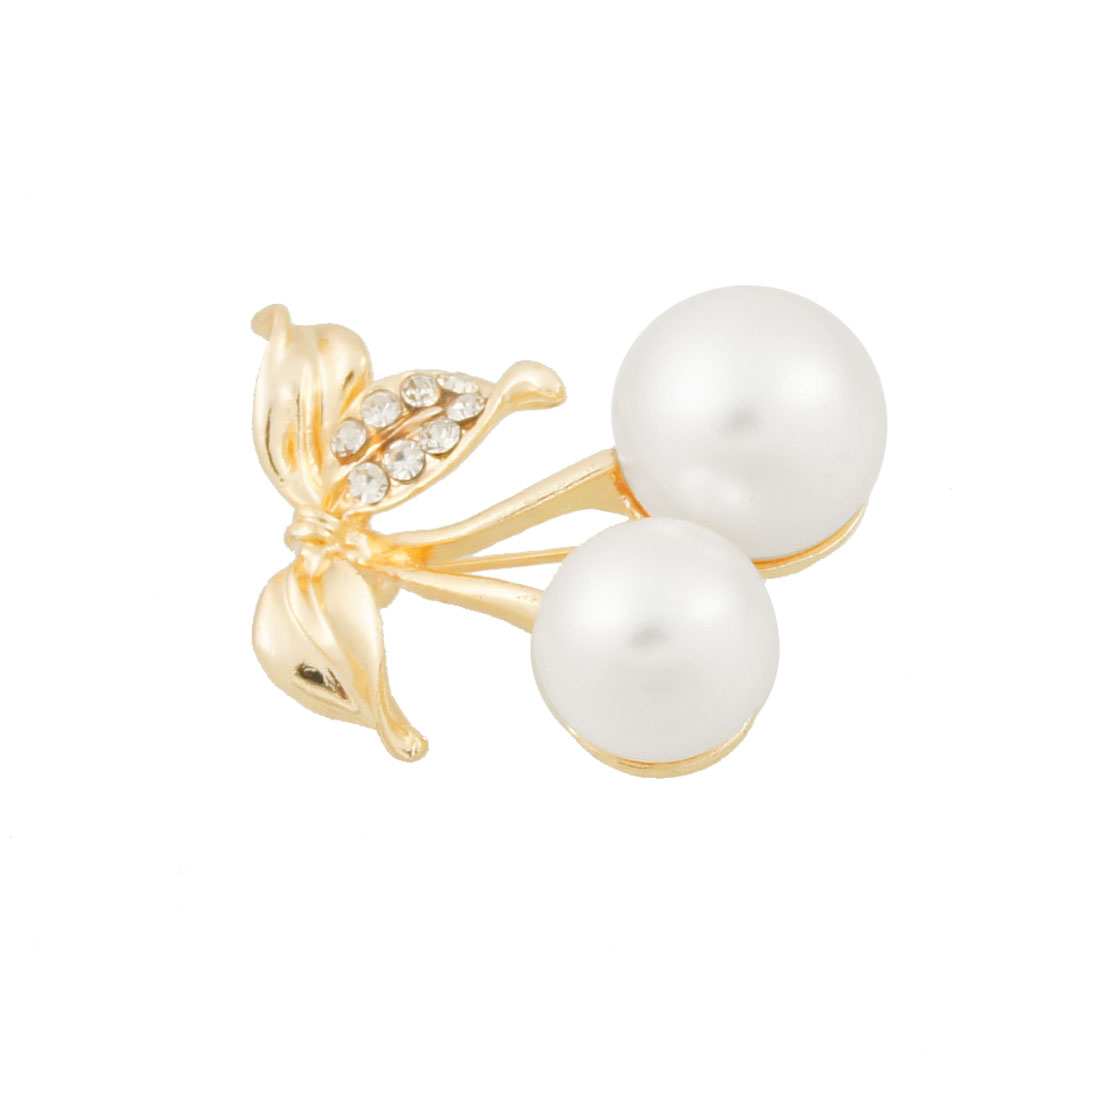 White Imitation Pearl Cherry Shaped Metal Pin Closure Brooch for Lady